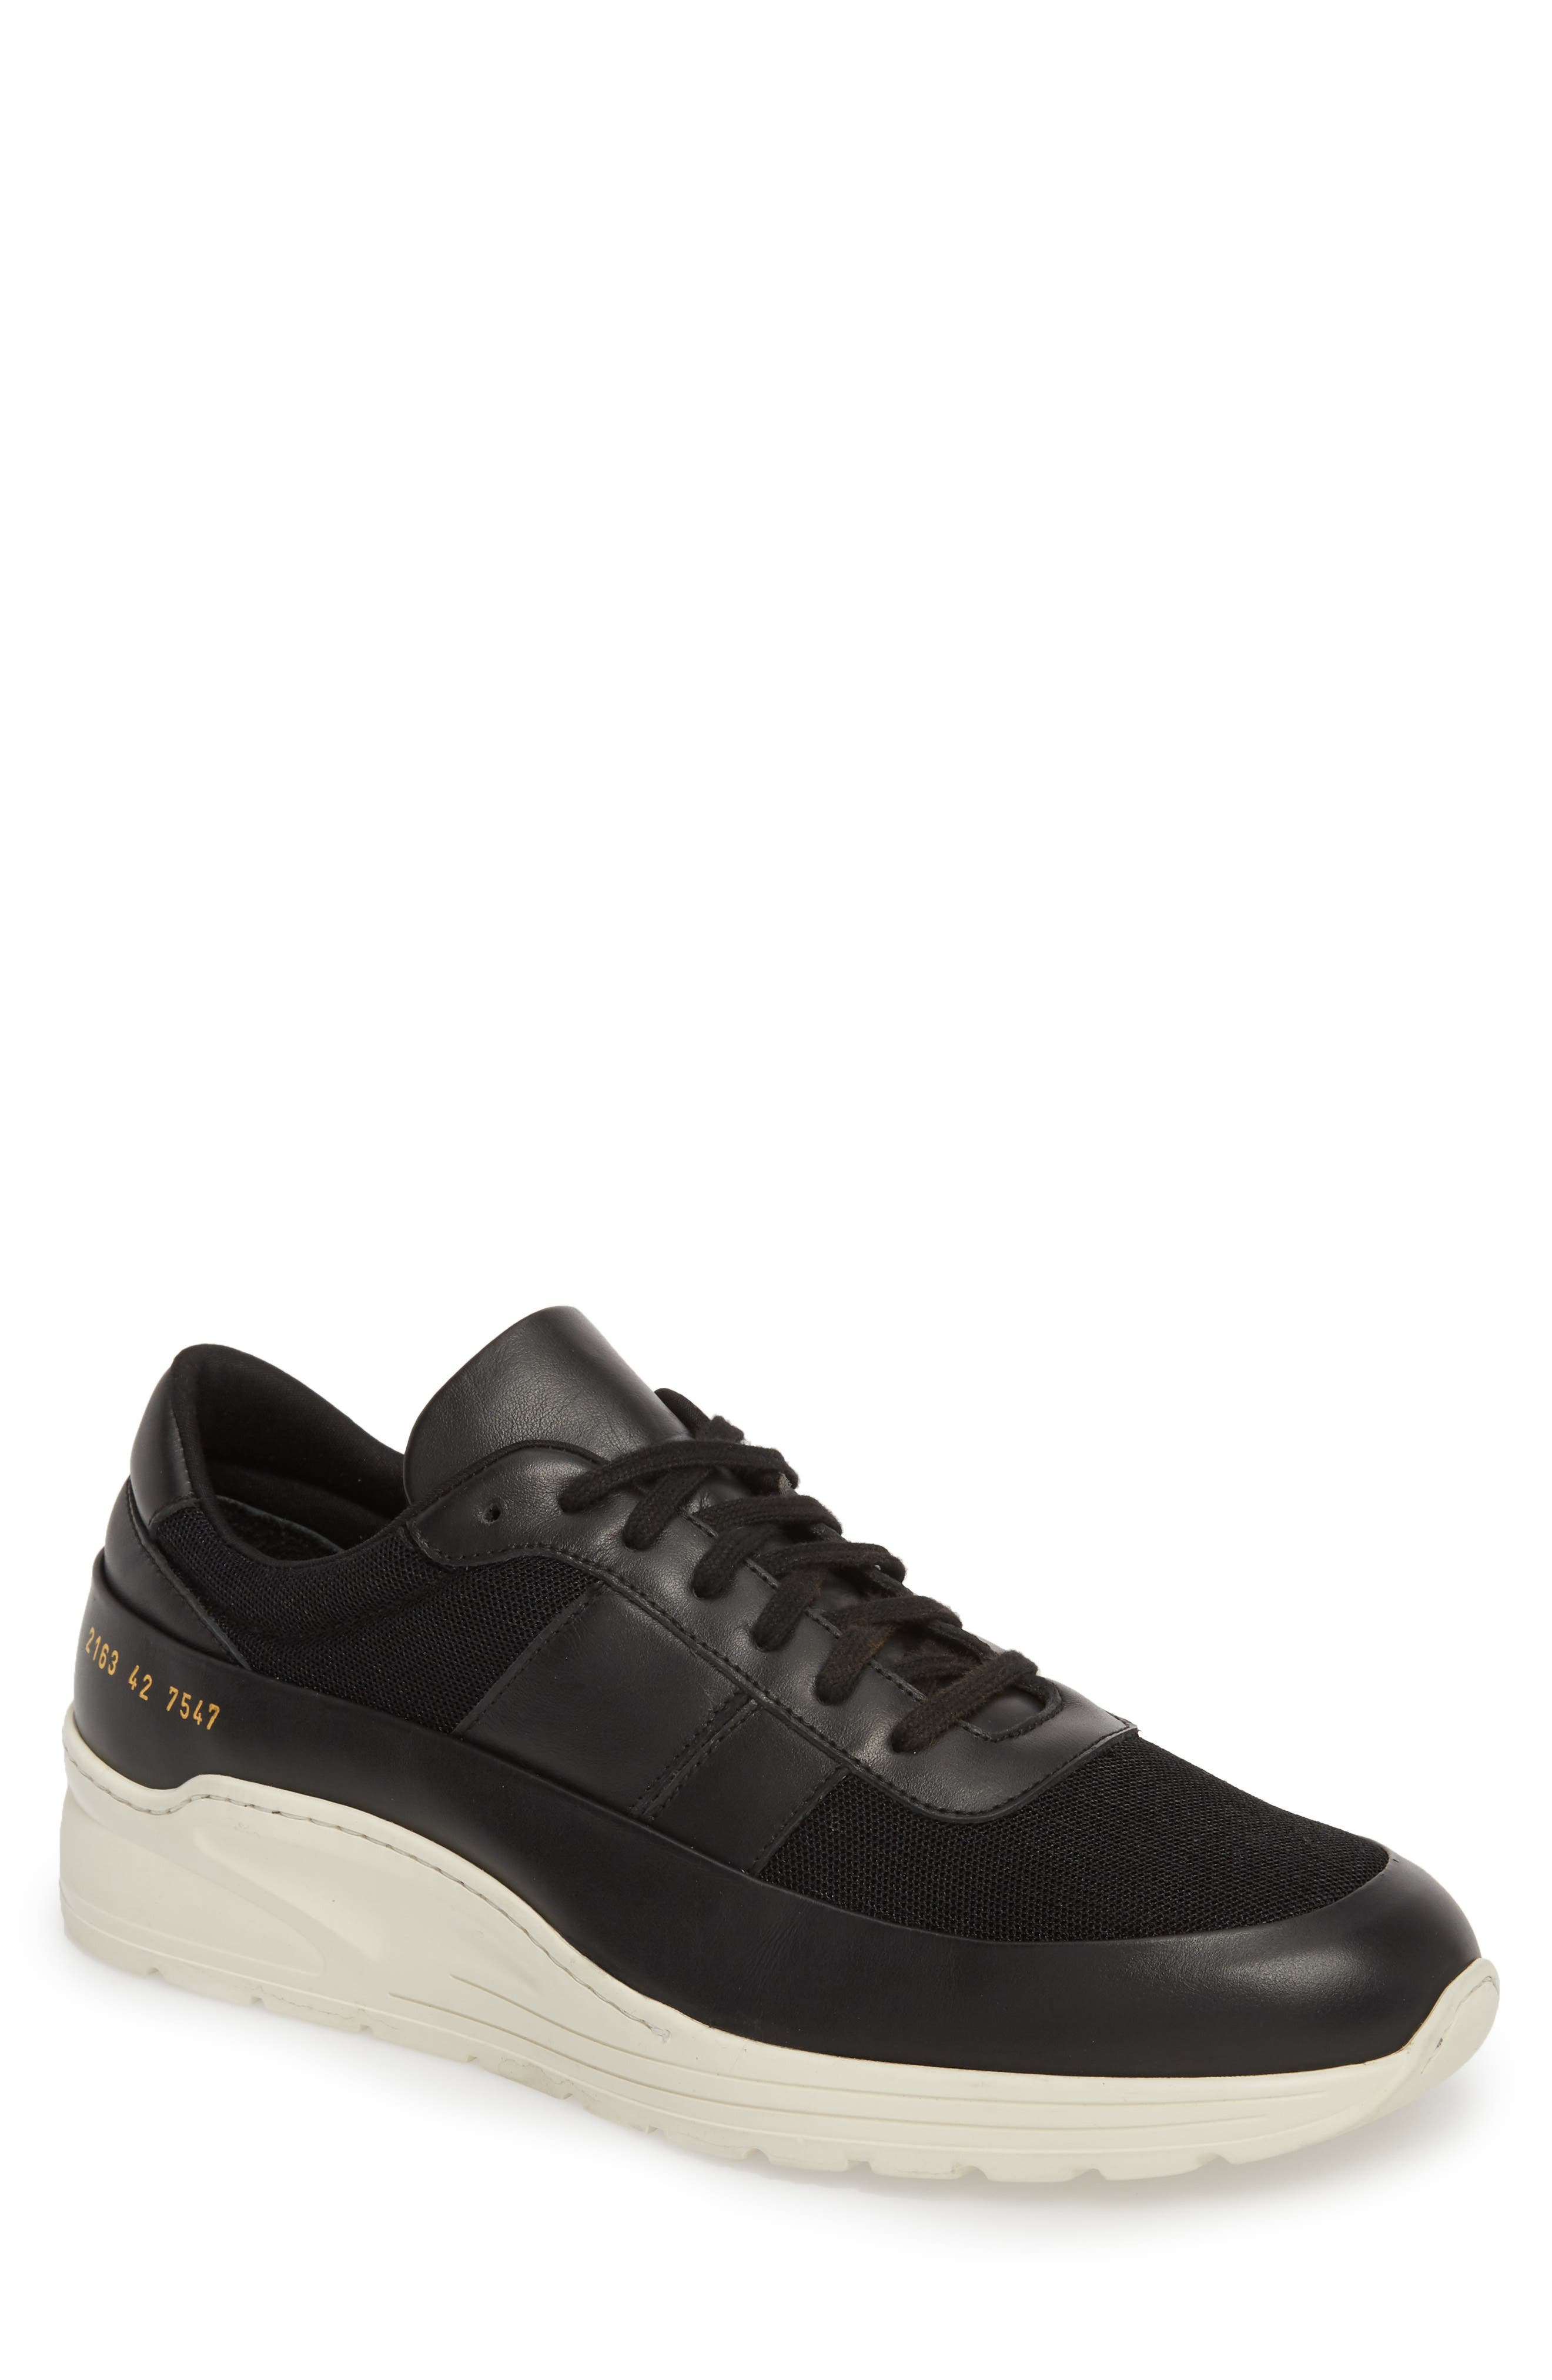 COMMON PROJECTS TRACK SUPER LOW TOP SNEAKER